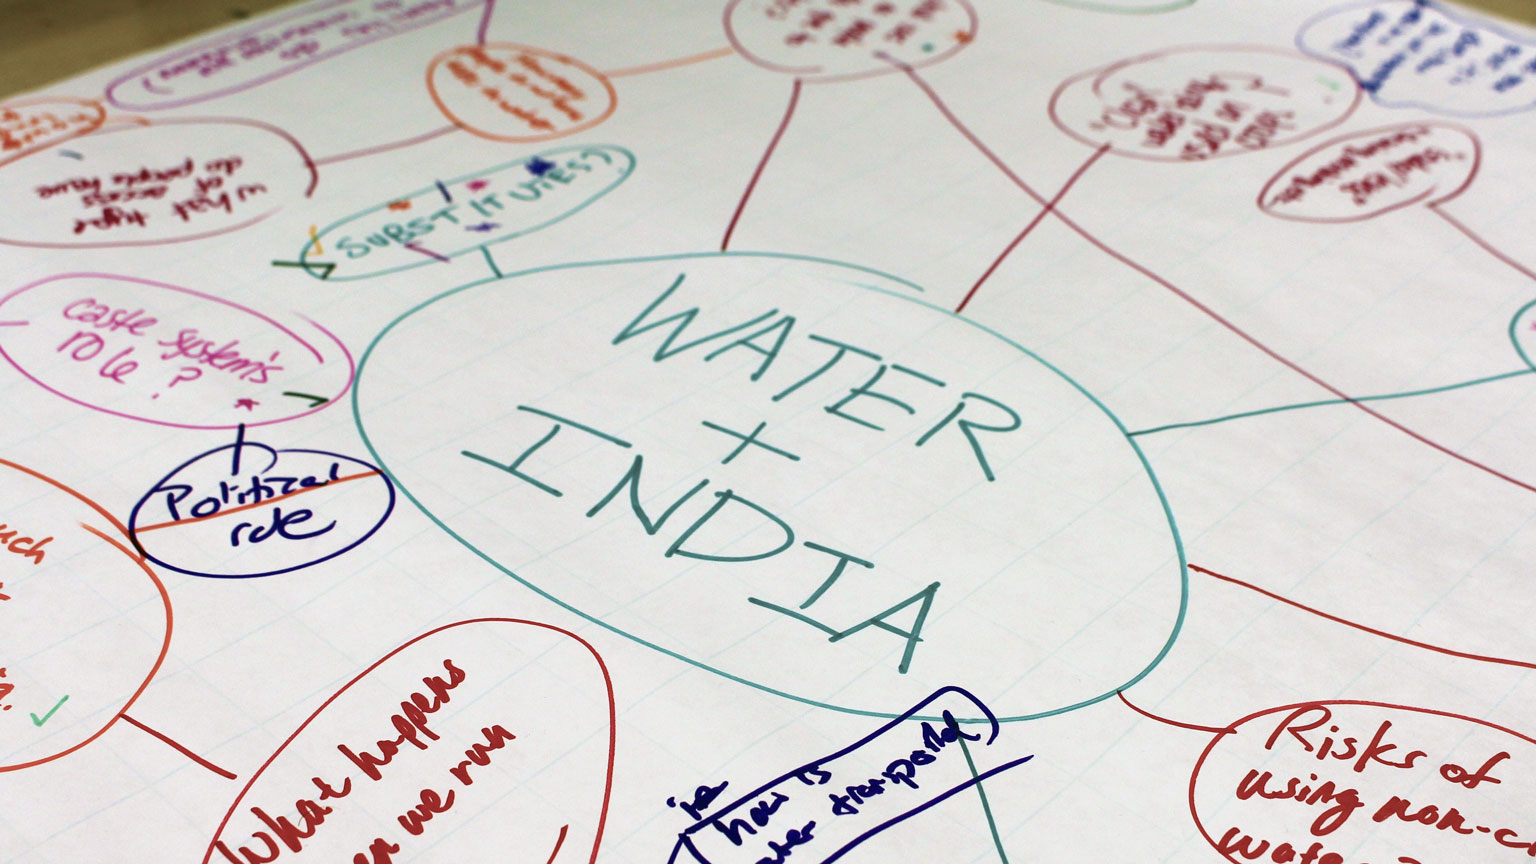 A hand-drawn map of different related topics surround the central social-justice topic of water in India.